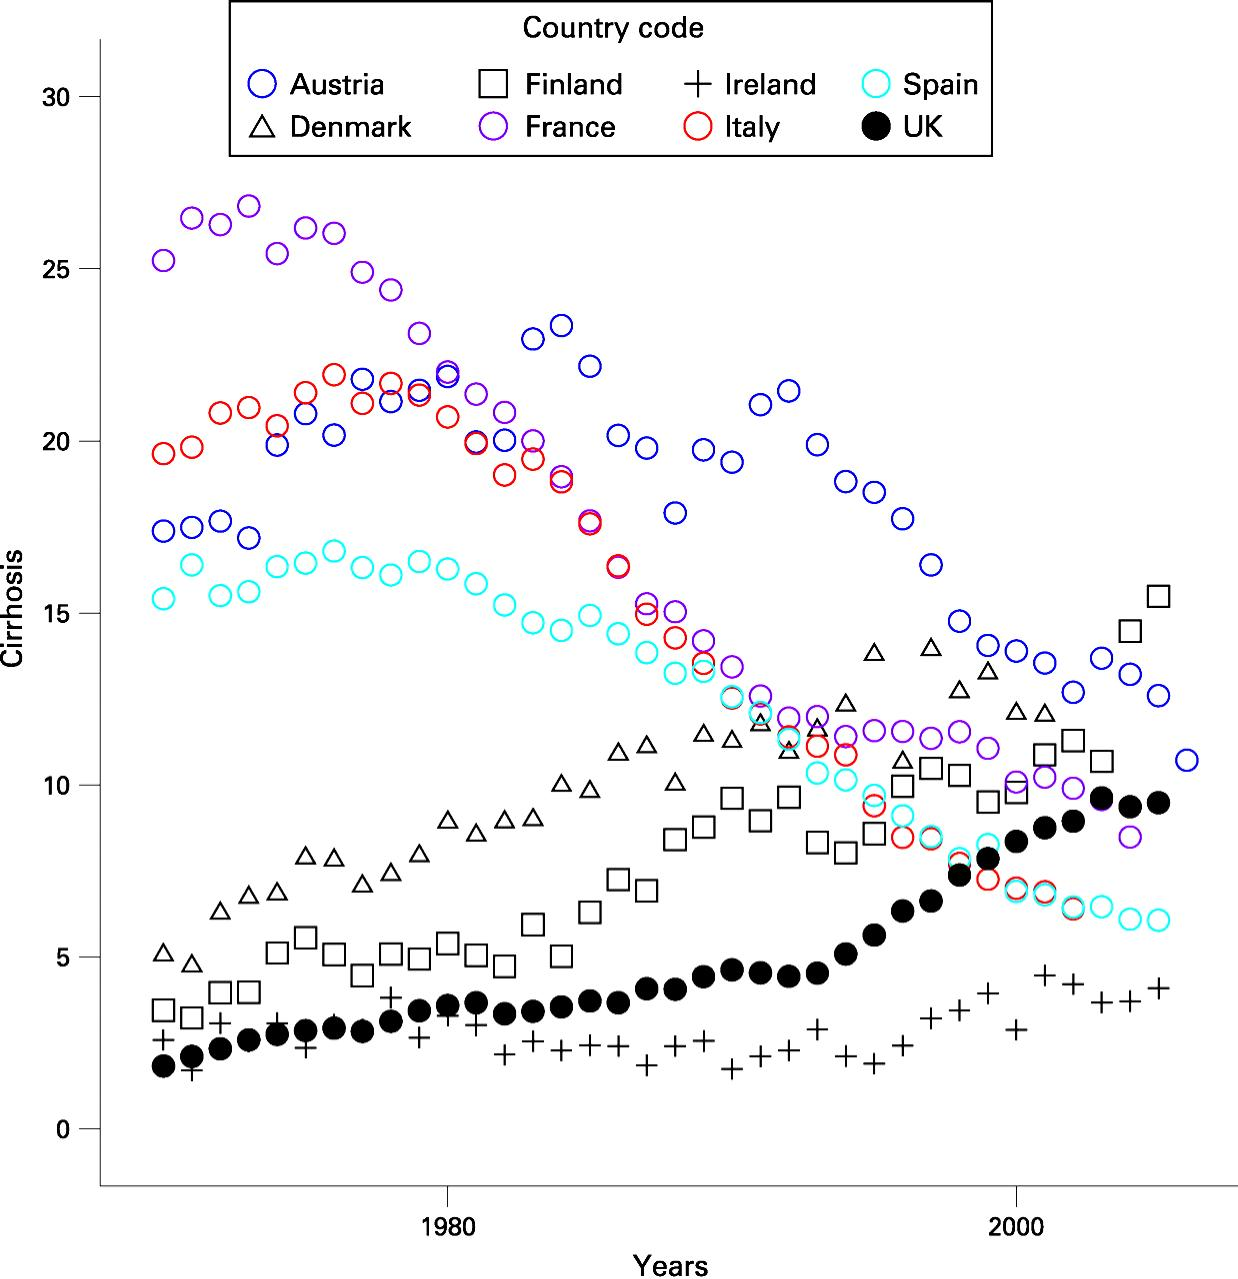 Over the last 30 years standardised cirrhosis mortality rates (cirrhosis deaths/100 000 under the age of 64 years) have